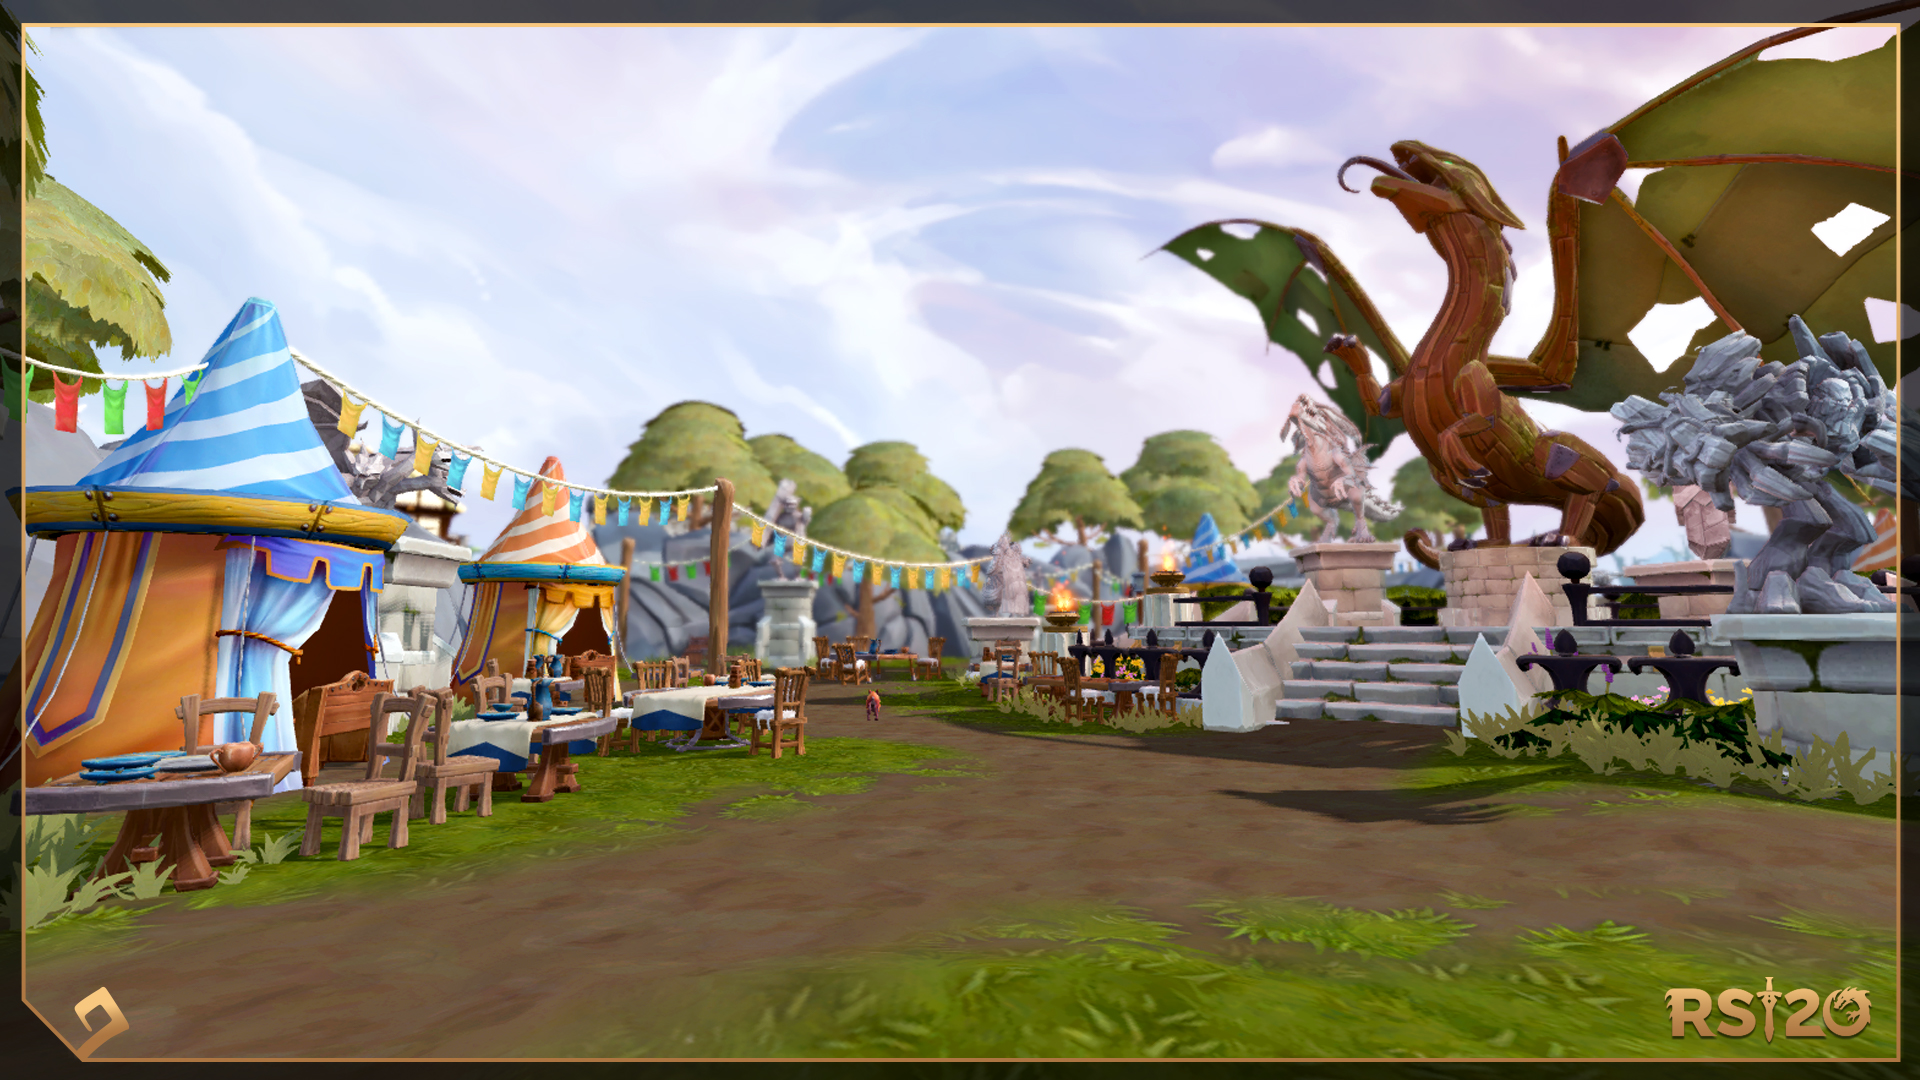 Runescape 2021 Christmas Event Runescape On Twitter It S Runescape S 20th Anniversary And We Re Throwing A Grand Party Https T Co Uodys4yyo0 From Jan 4 To Jan 31 There Ll Be Quests Buffs And A Celebratory New Outfit To Enjoy